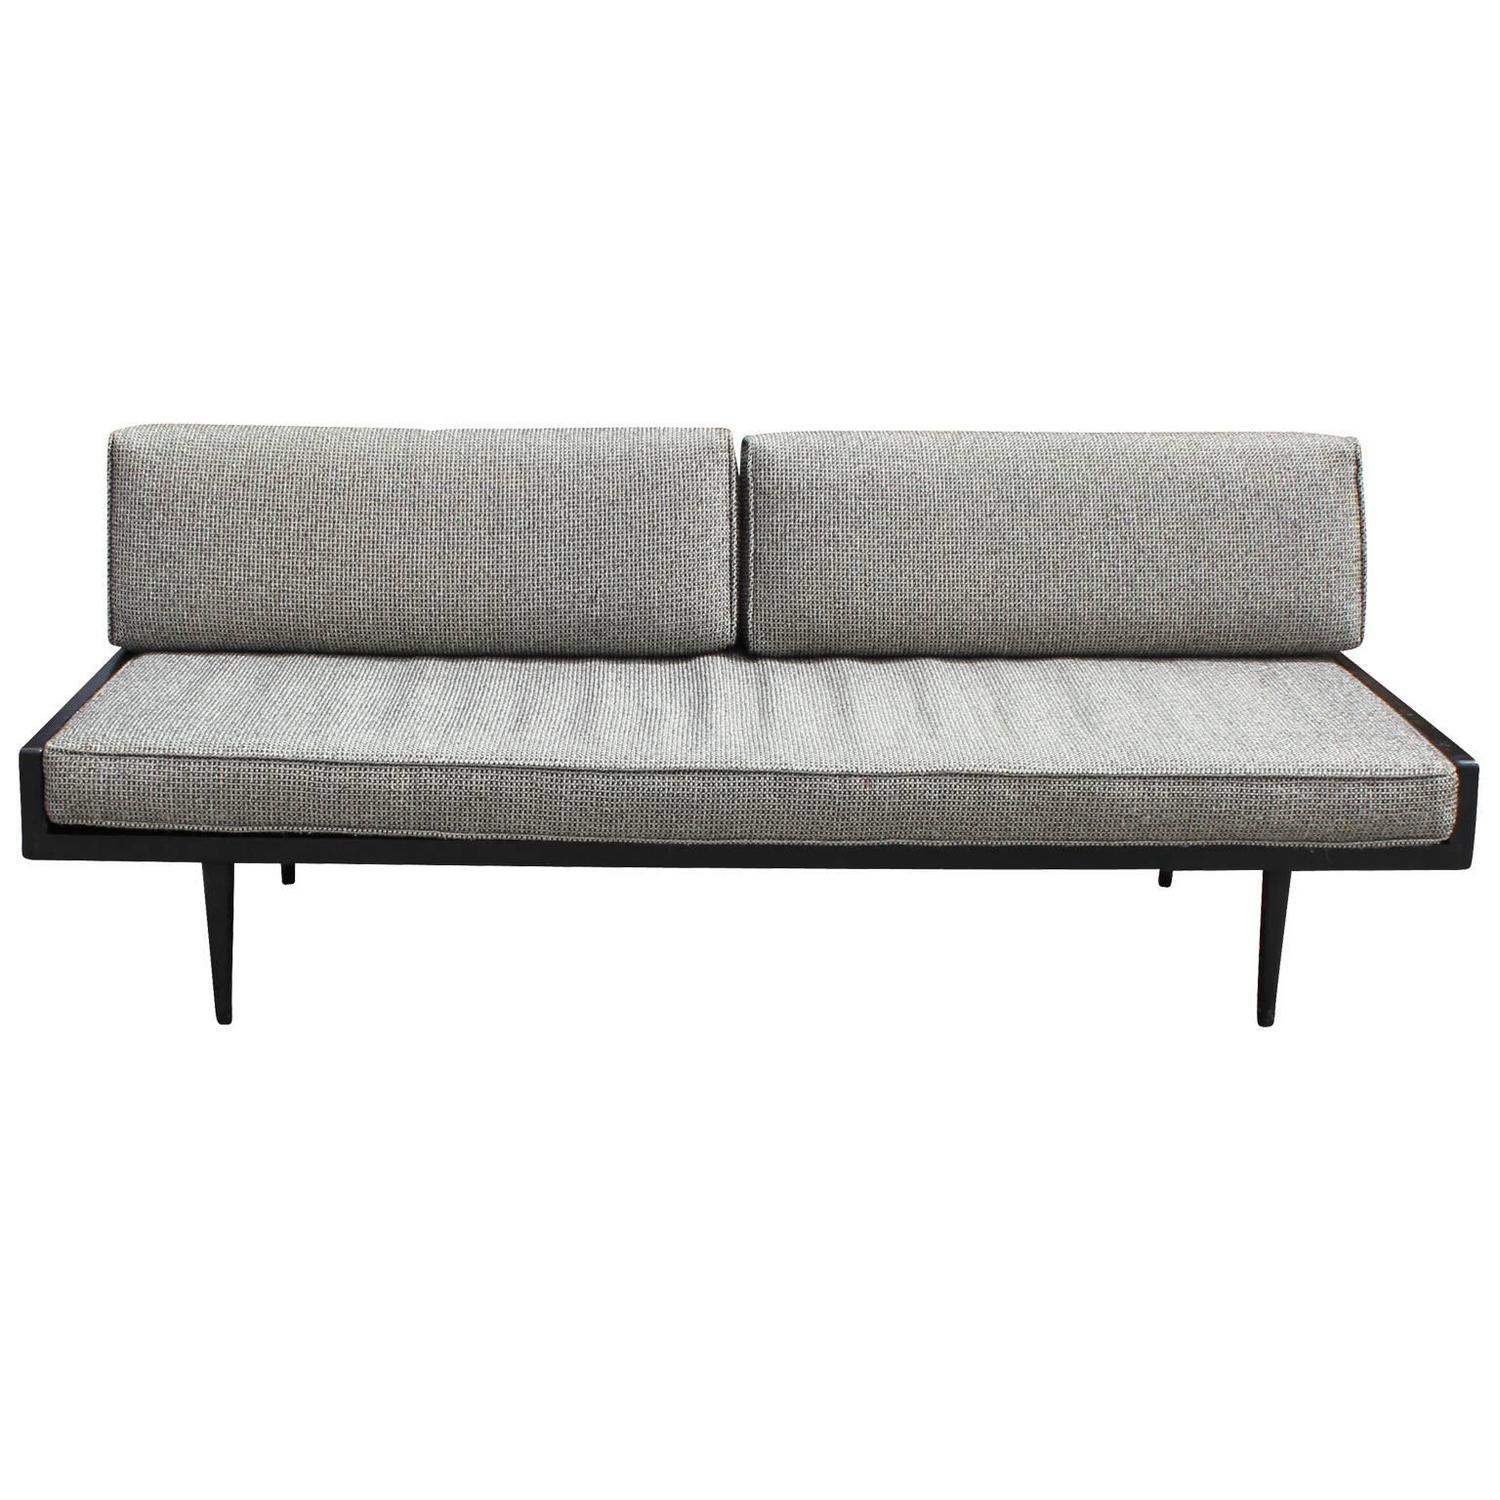 Sleek Armless Danish Style Sofa Or Daybed At 1stdibs